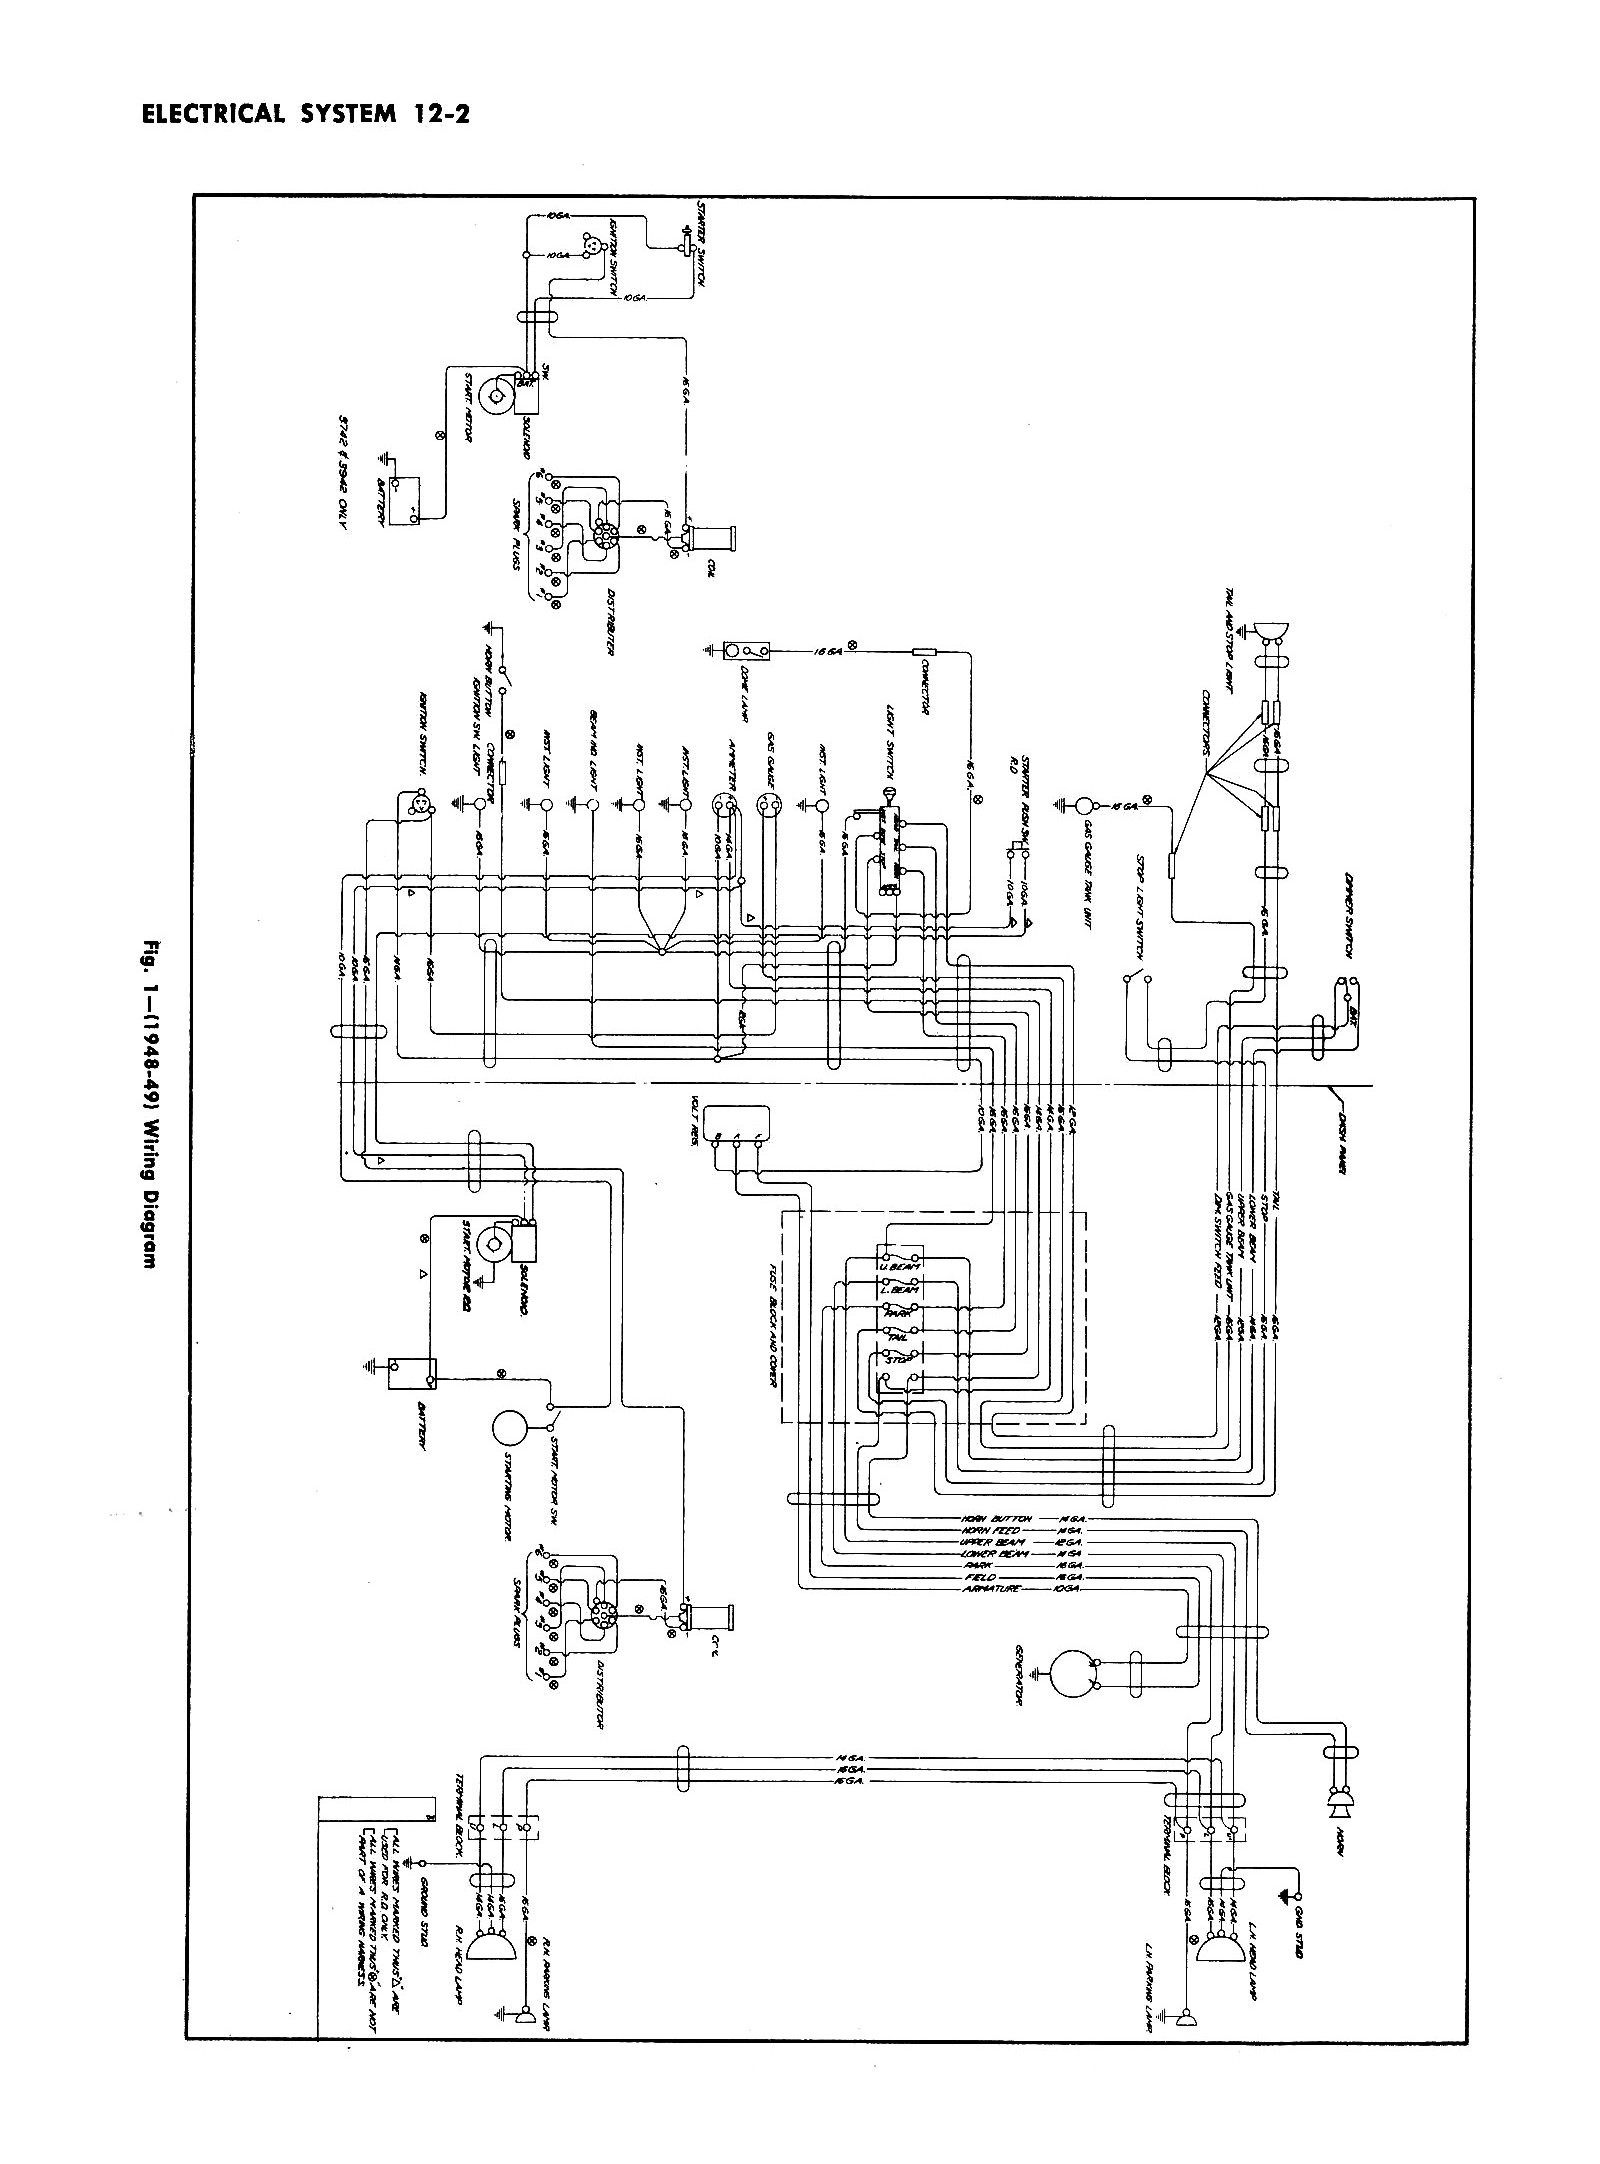 48car gmc ke switch wiring diagram wiring diagram simonand chevrolet wiring diagram at mifinder.co